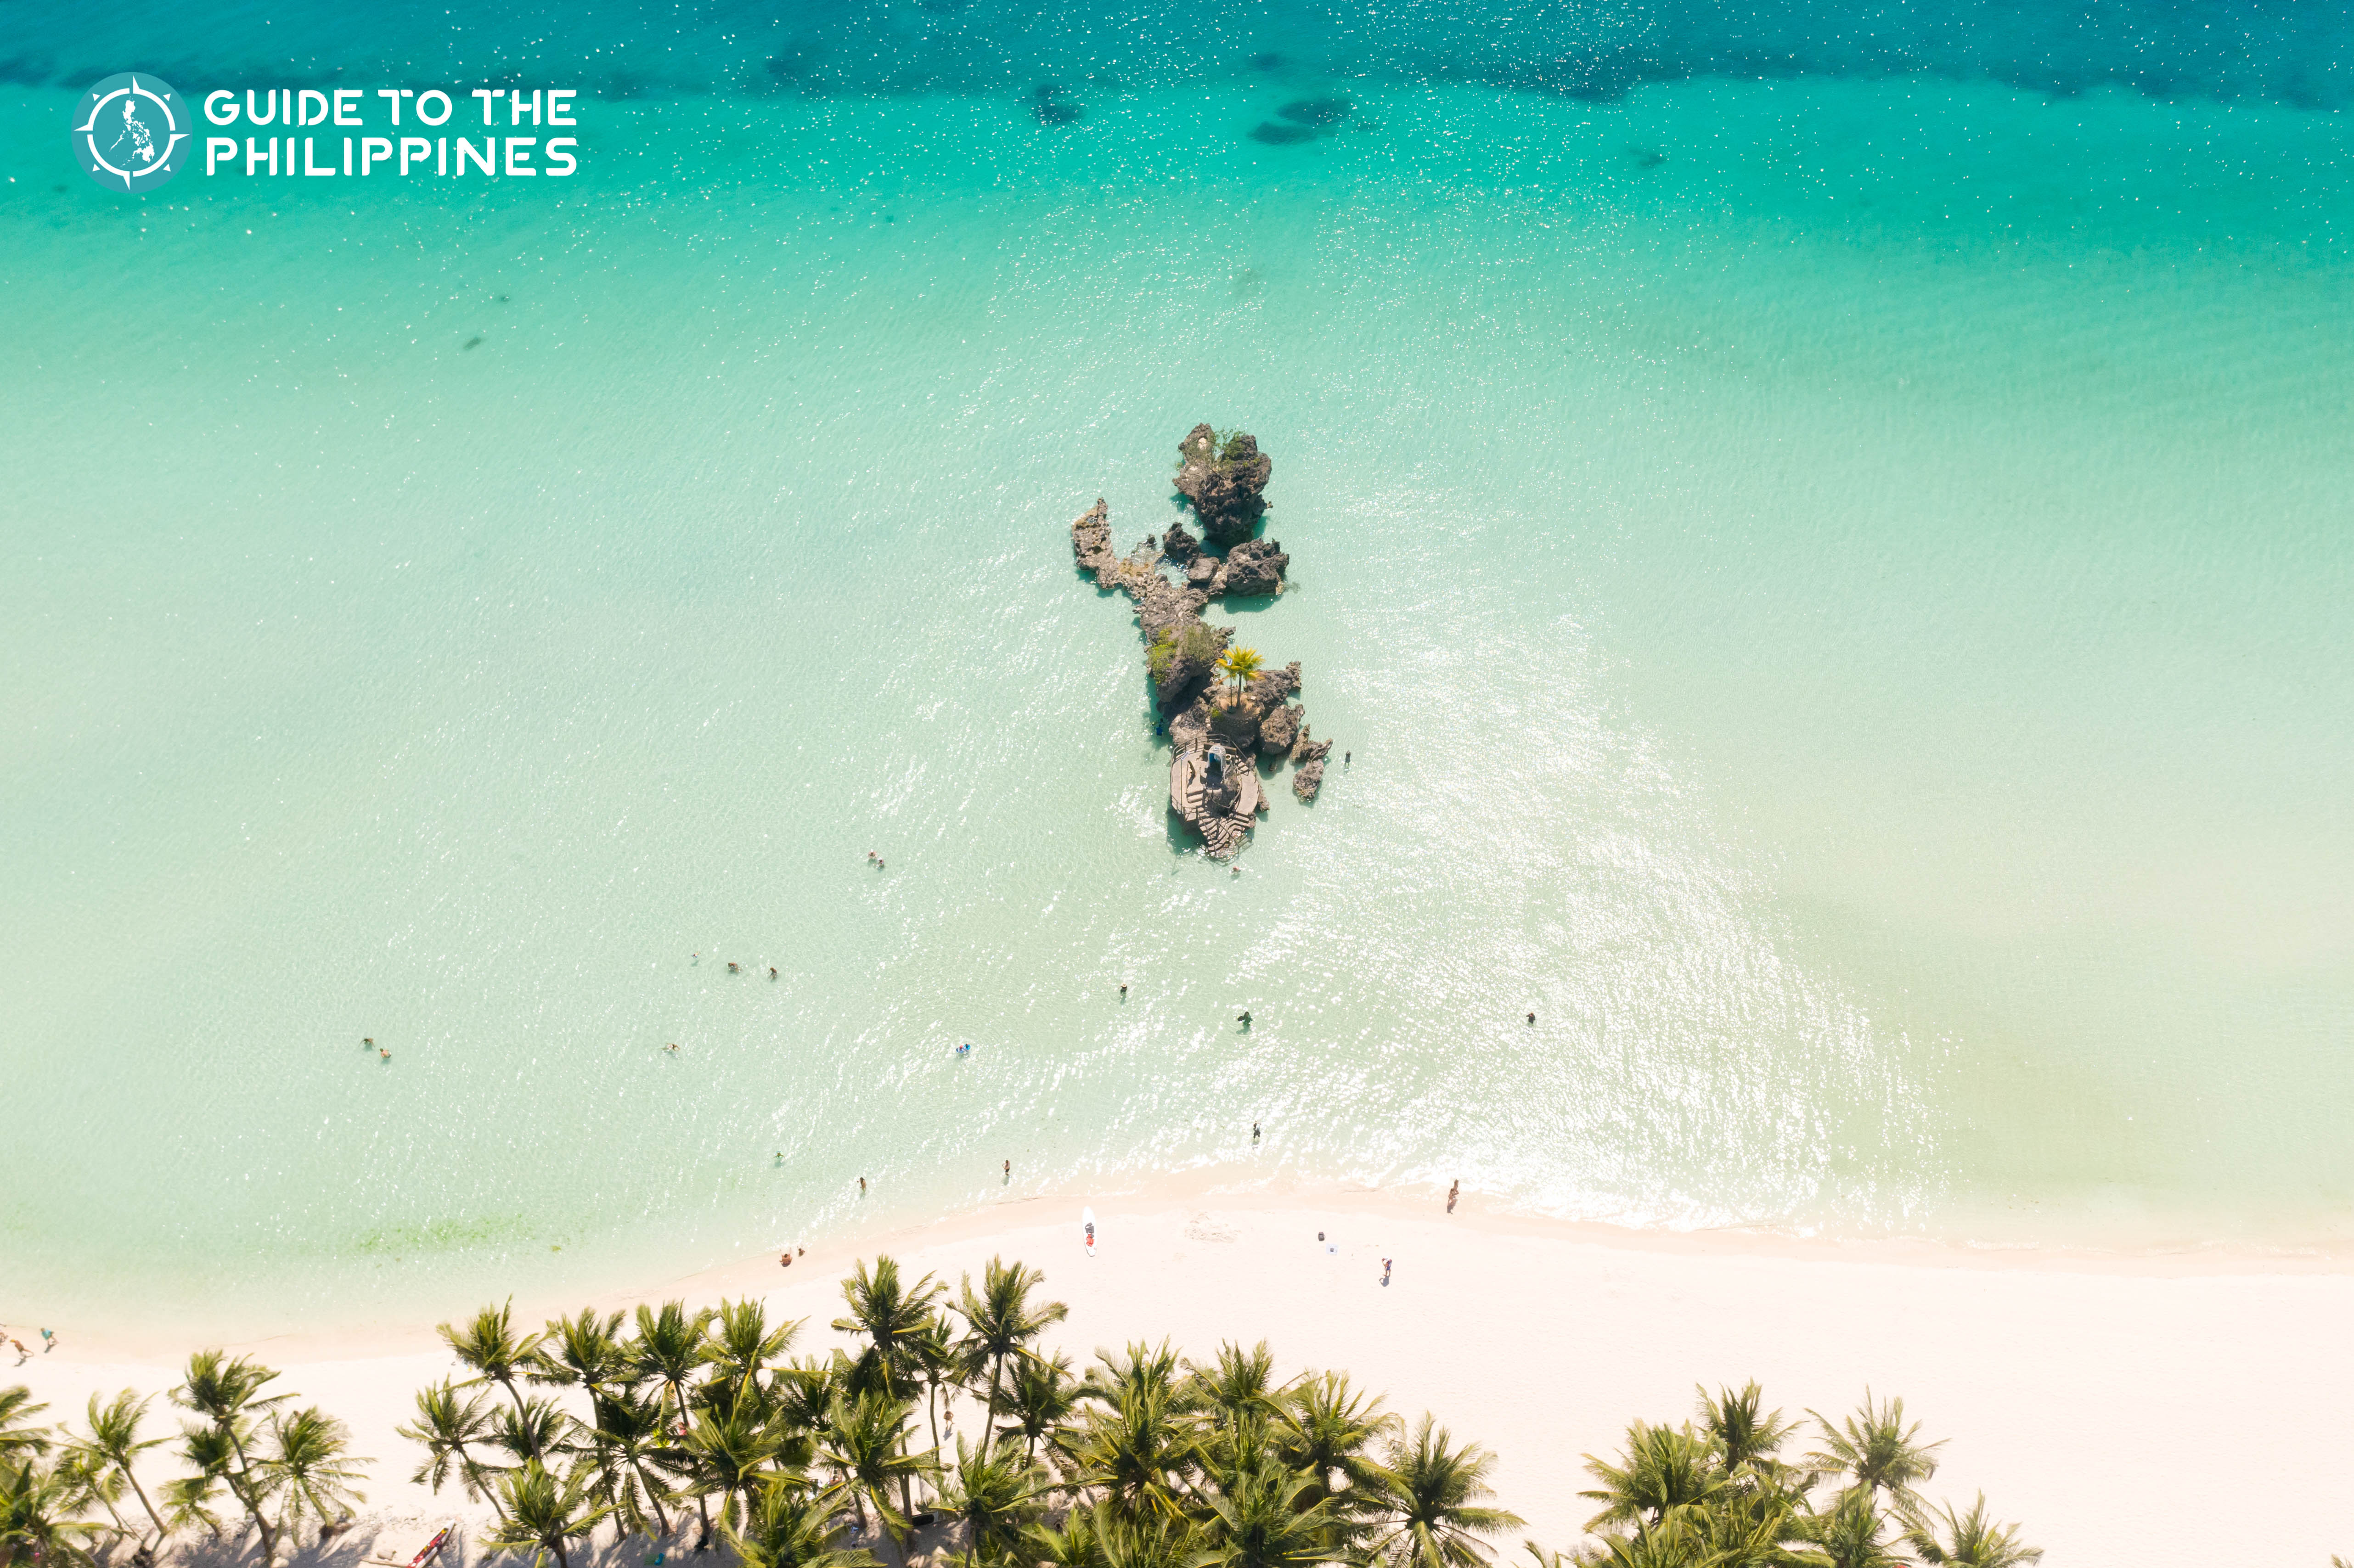 Best Boracay Travel Guide: What to Do + Hotels + COVID-19 Travel Requirements